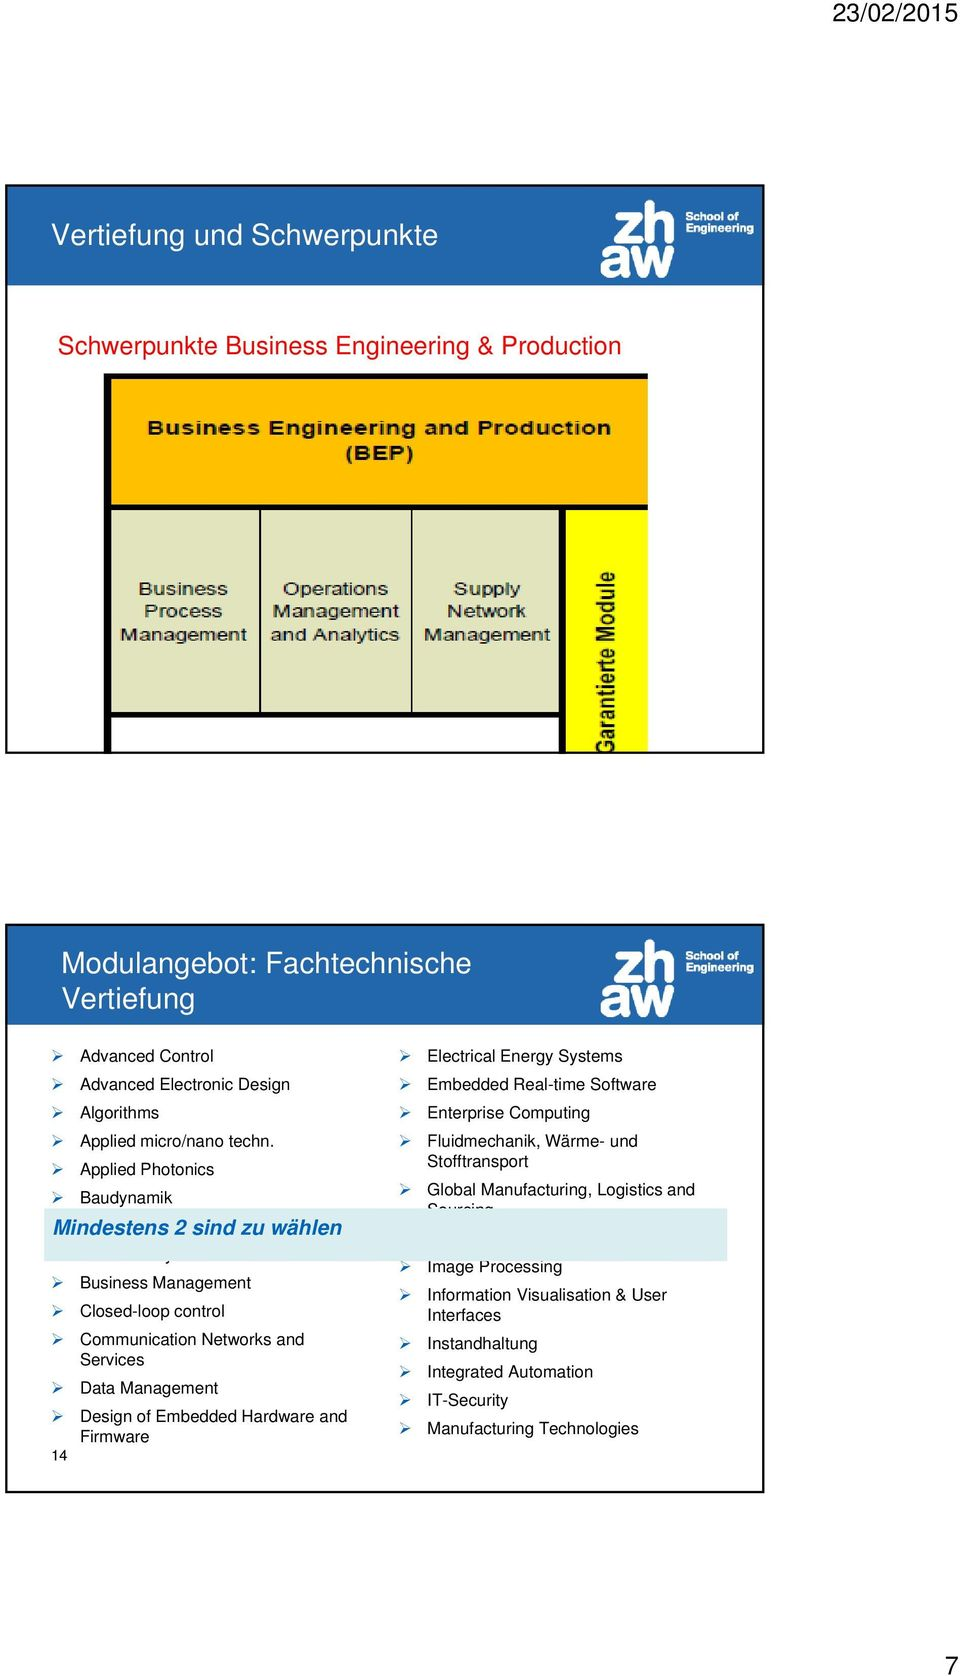 Applied Photonics Baudynamik Mindestens Business and 2 ICT sind zu wählen Business Dynamics Business Management Closed-loop control Communication Networks and Services Data Management